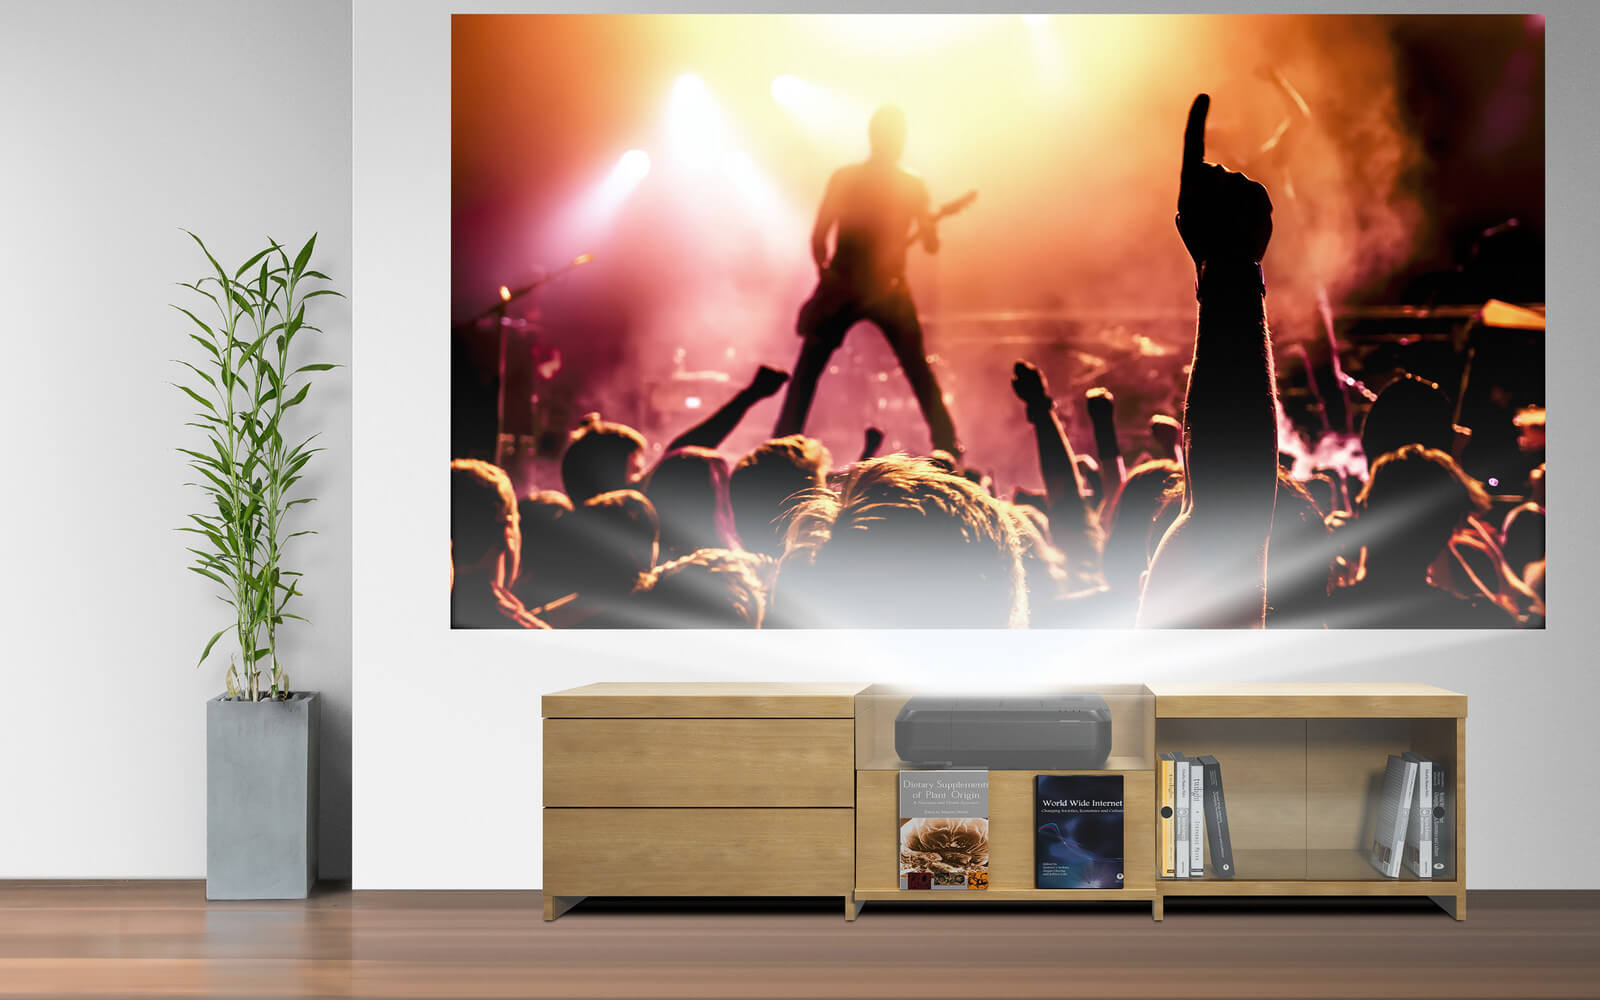 Epson's $3000 ultra short-throw laser projector can produce a 10-foot image